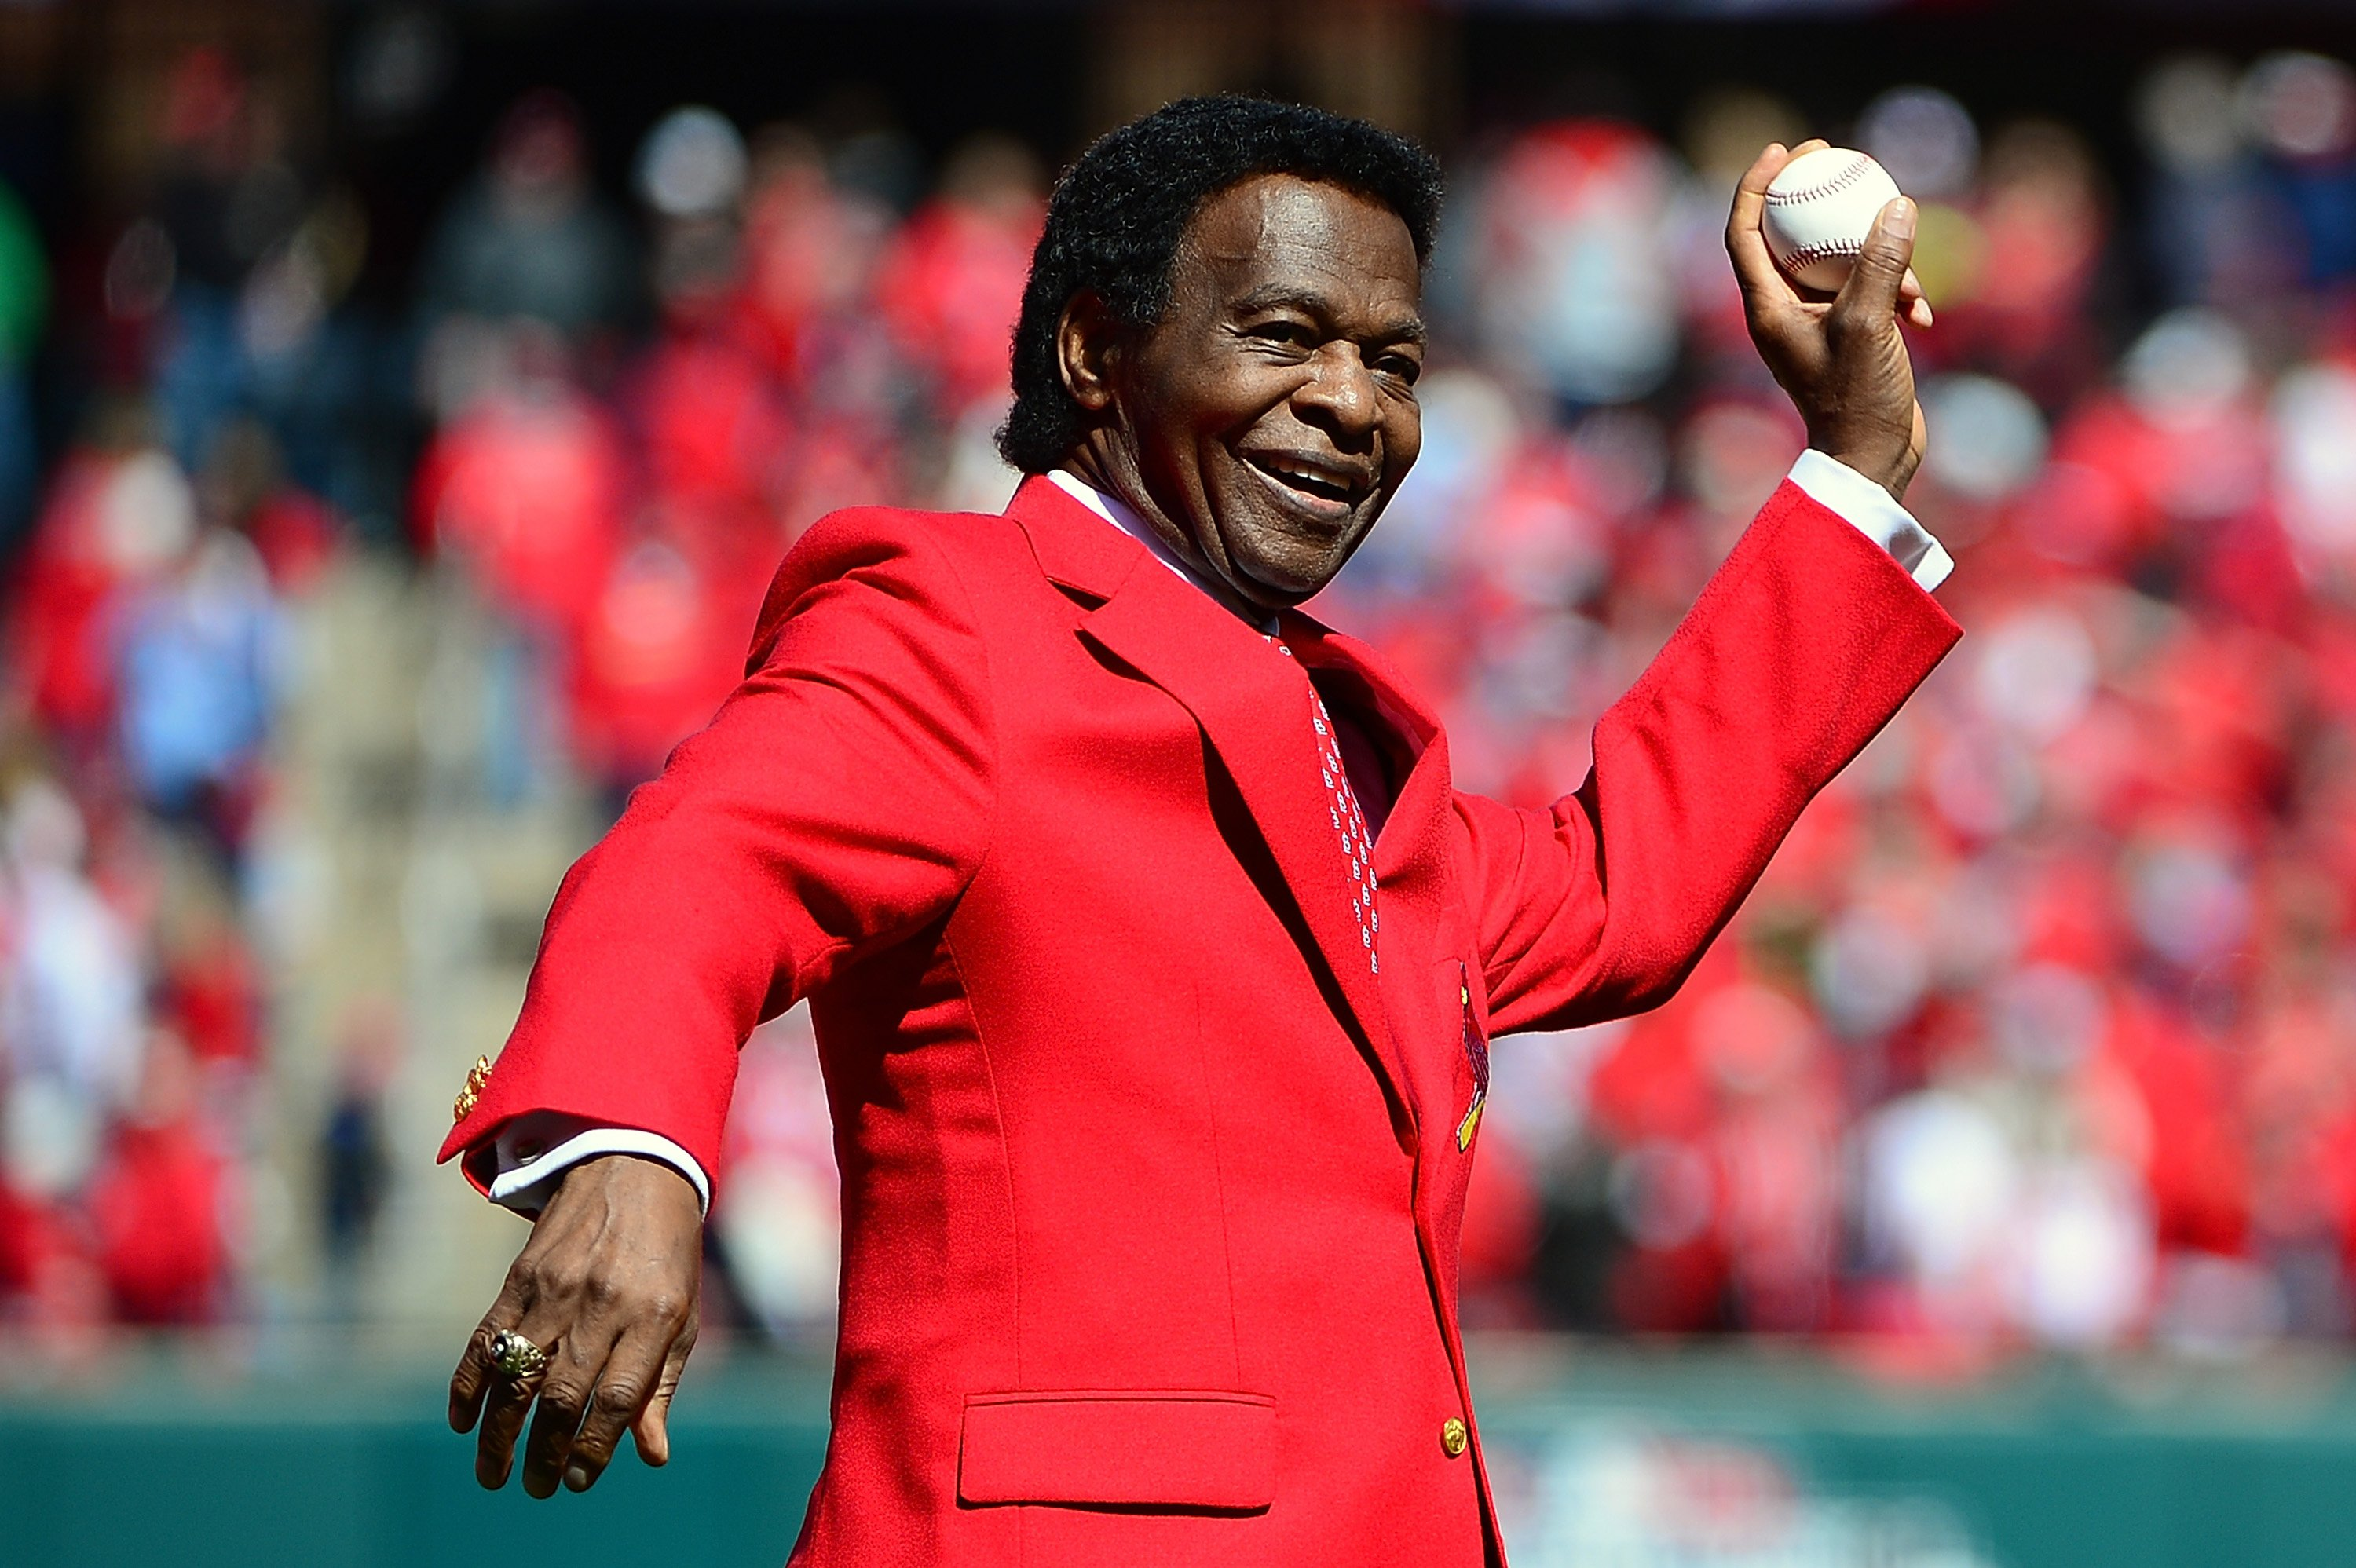 St. Louis Cardinals hall of famer Lou Brock throws out the first pitch at Busch Stadium on April 11, 2016 in St. Louis, Missouri. | Source: Getty Images